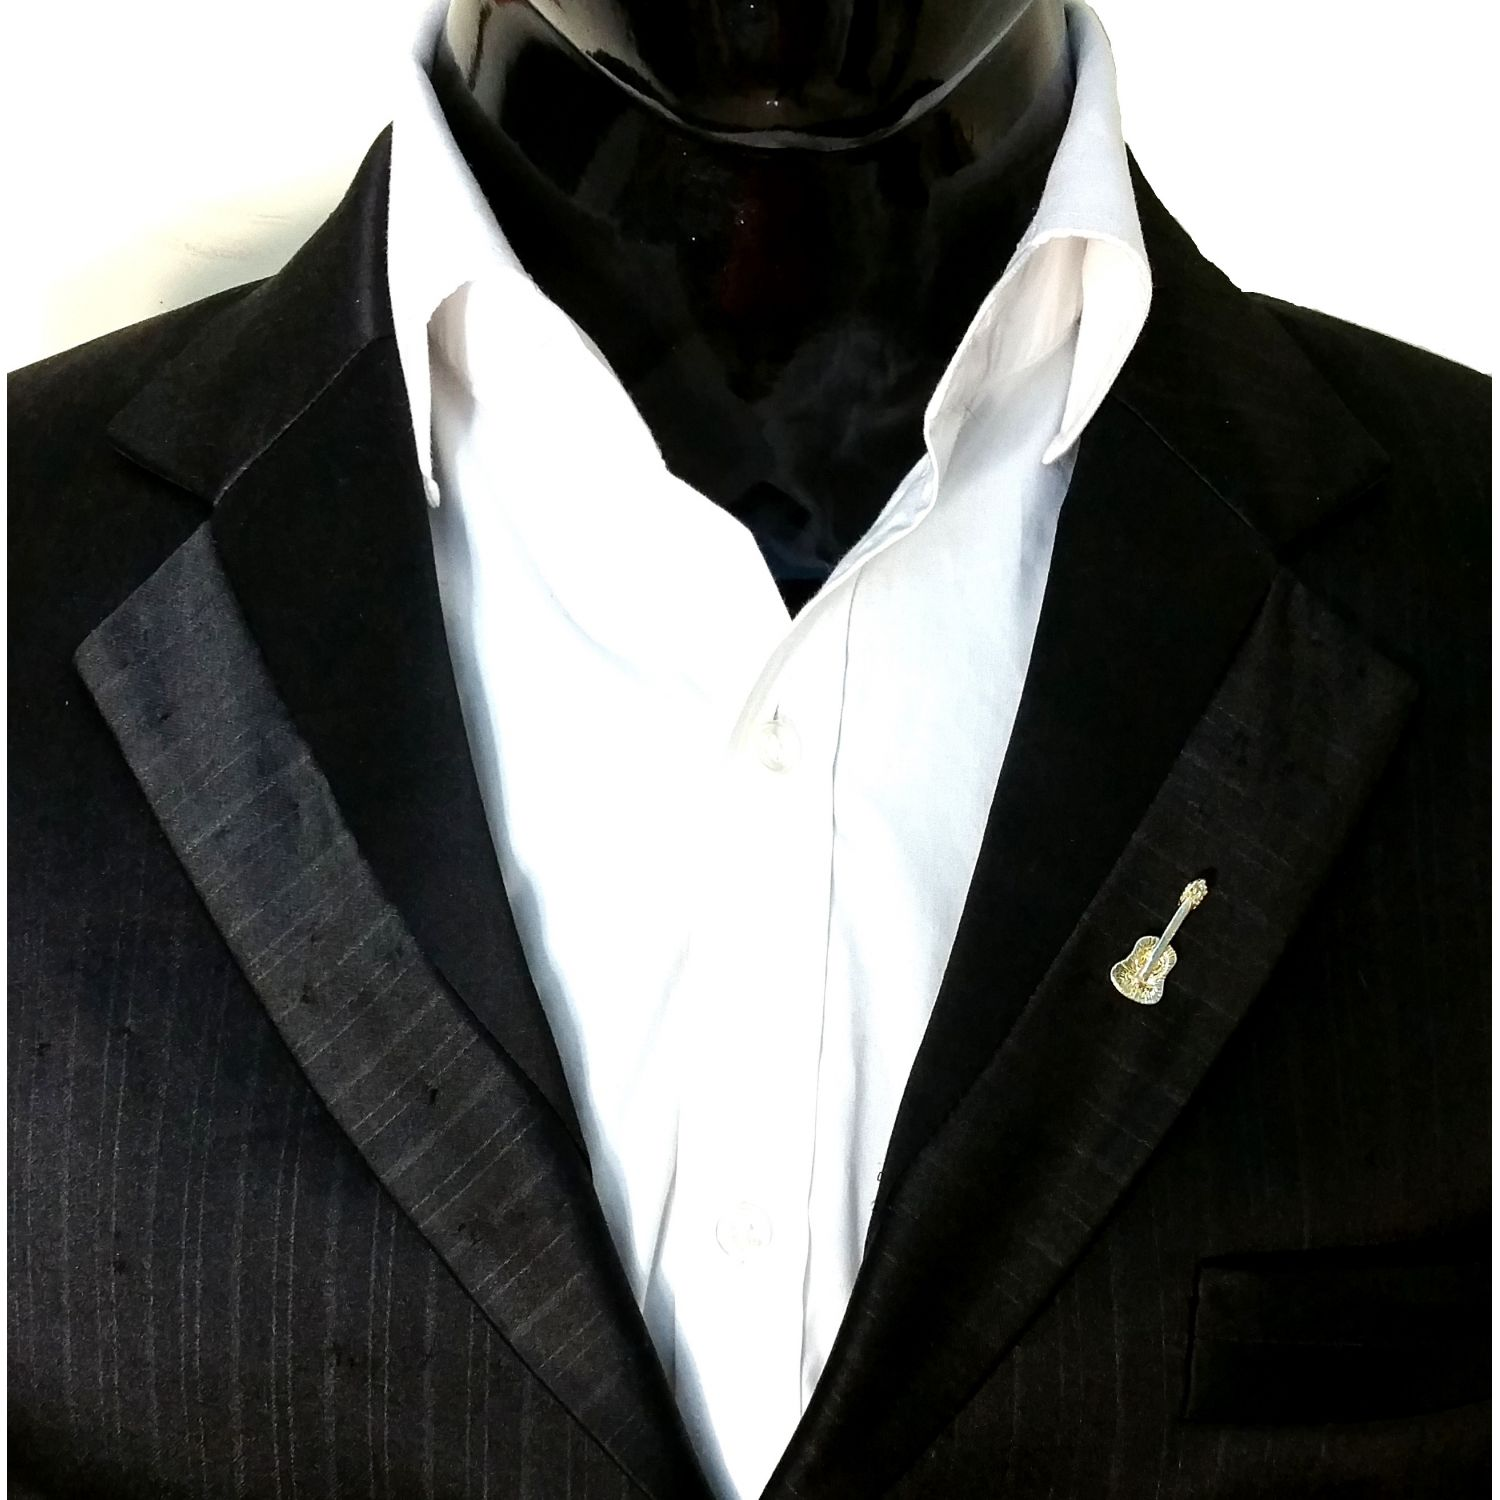 p blazer men suit in handkerchief mens faux design gray brooch